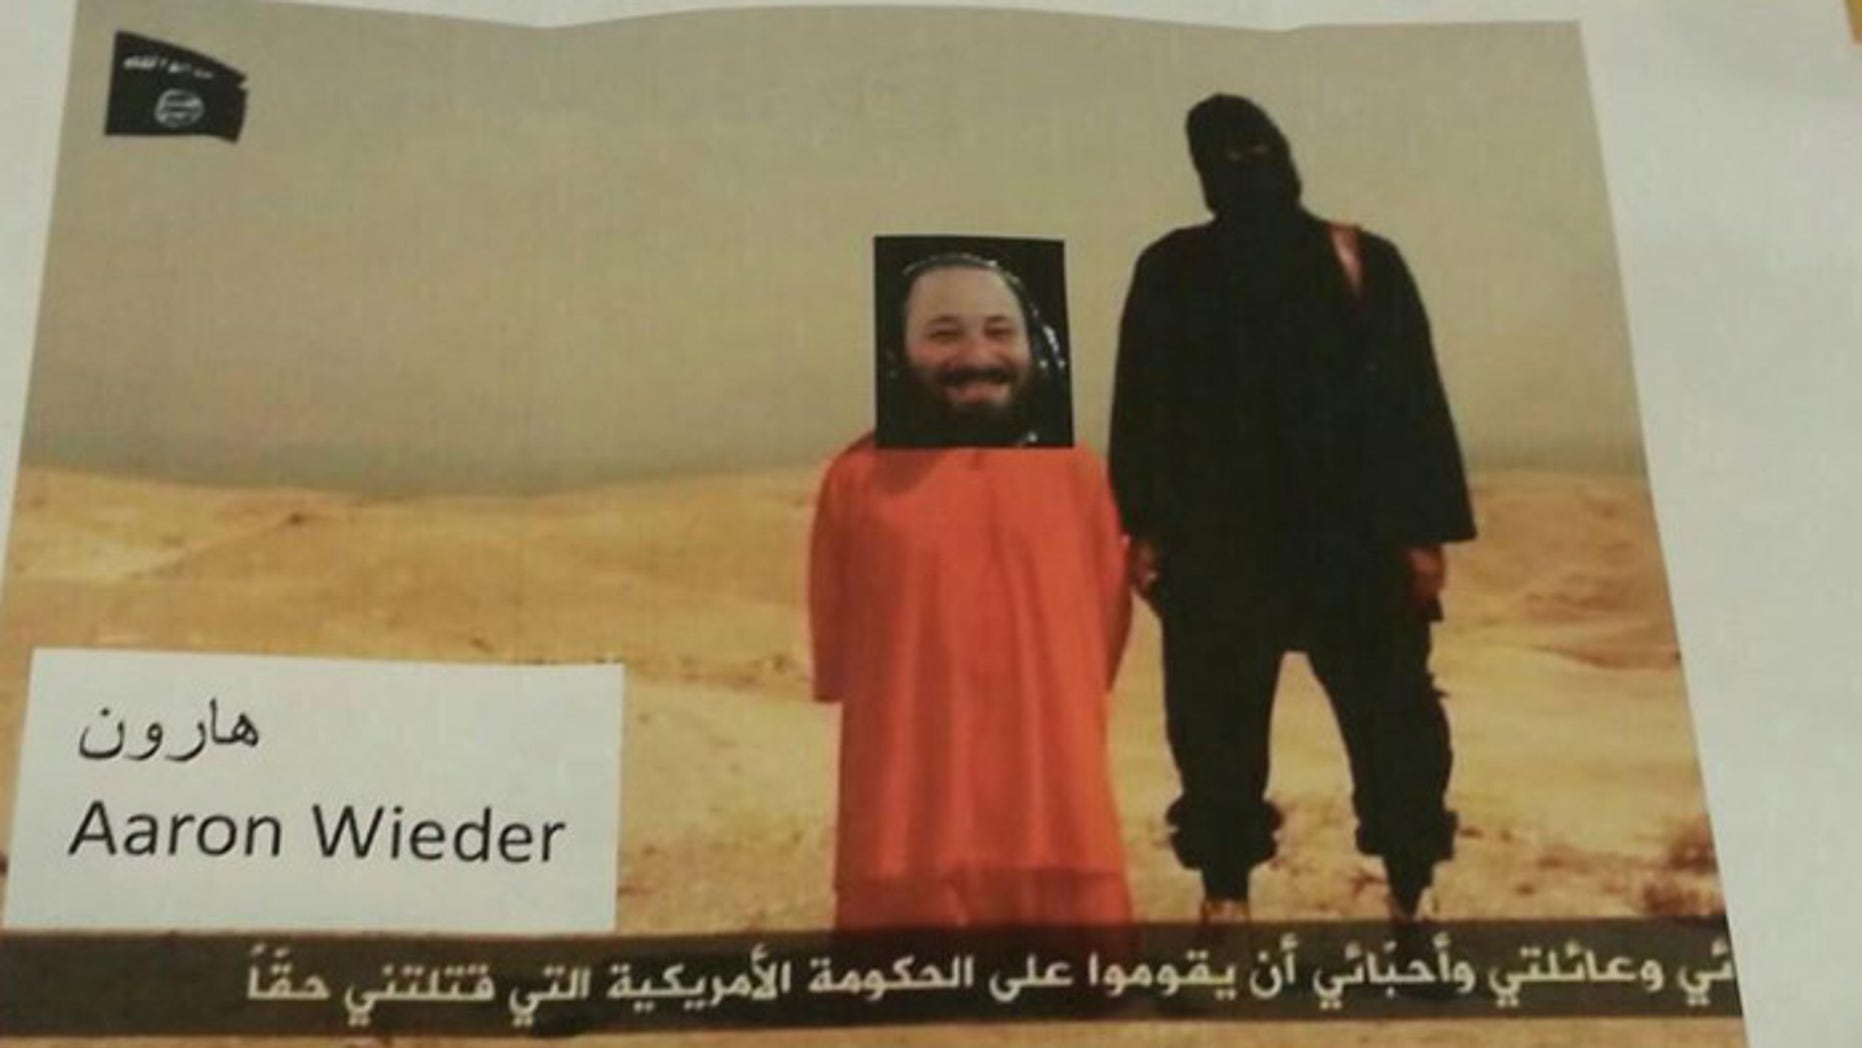 A New York lawmaker says the frightening, Photoshopped image was sent to his office by mail.